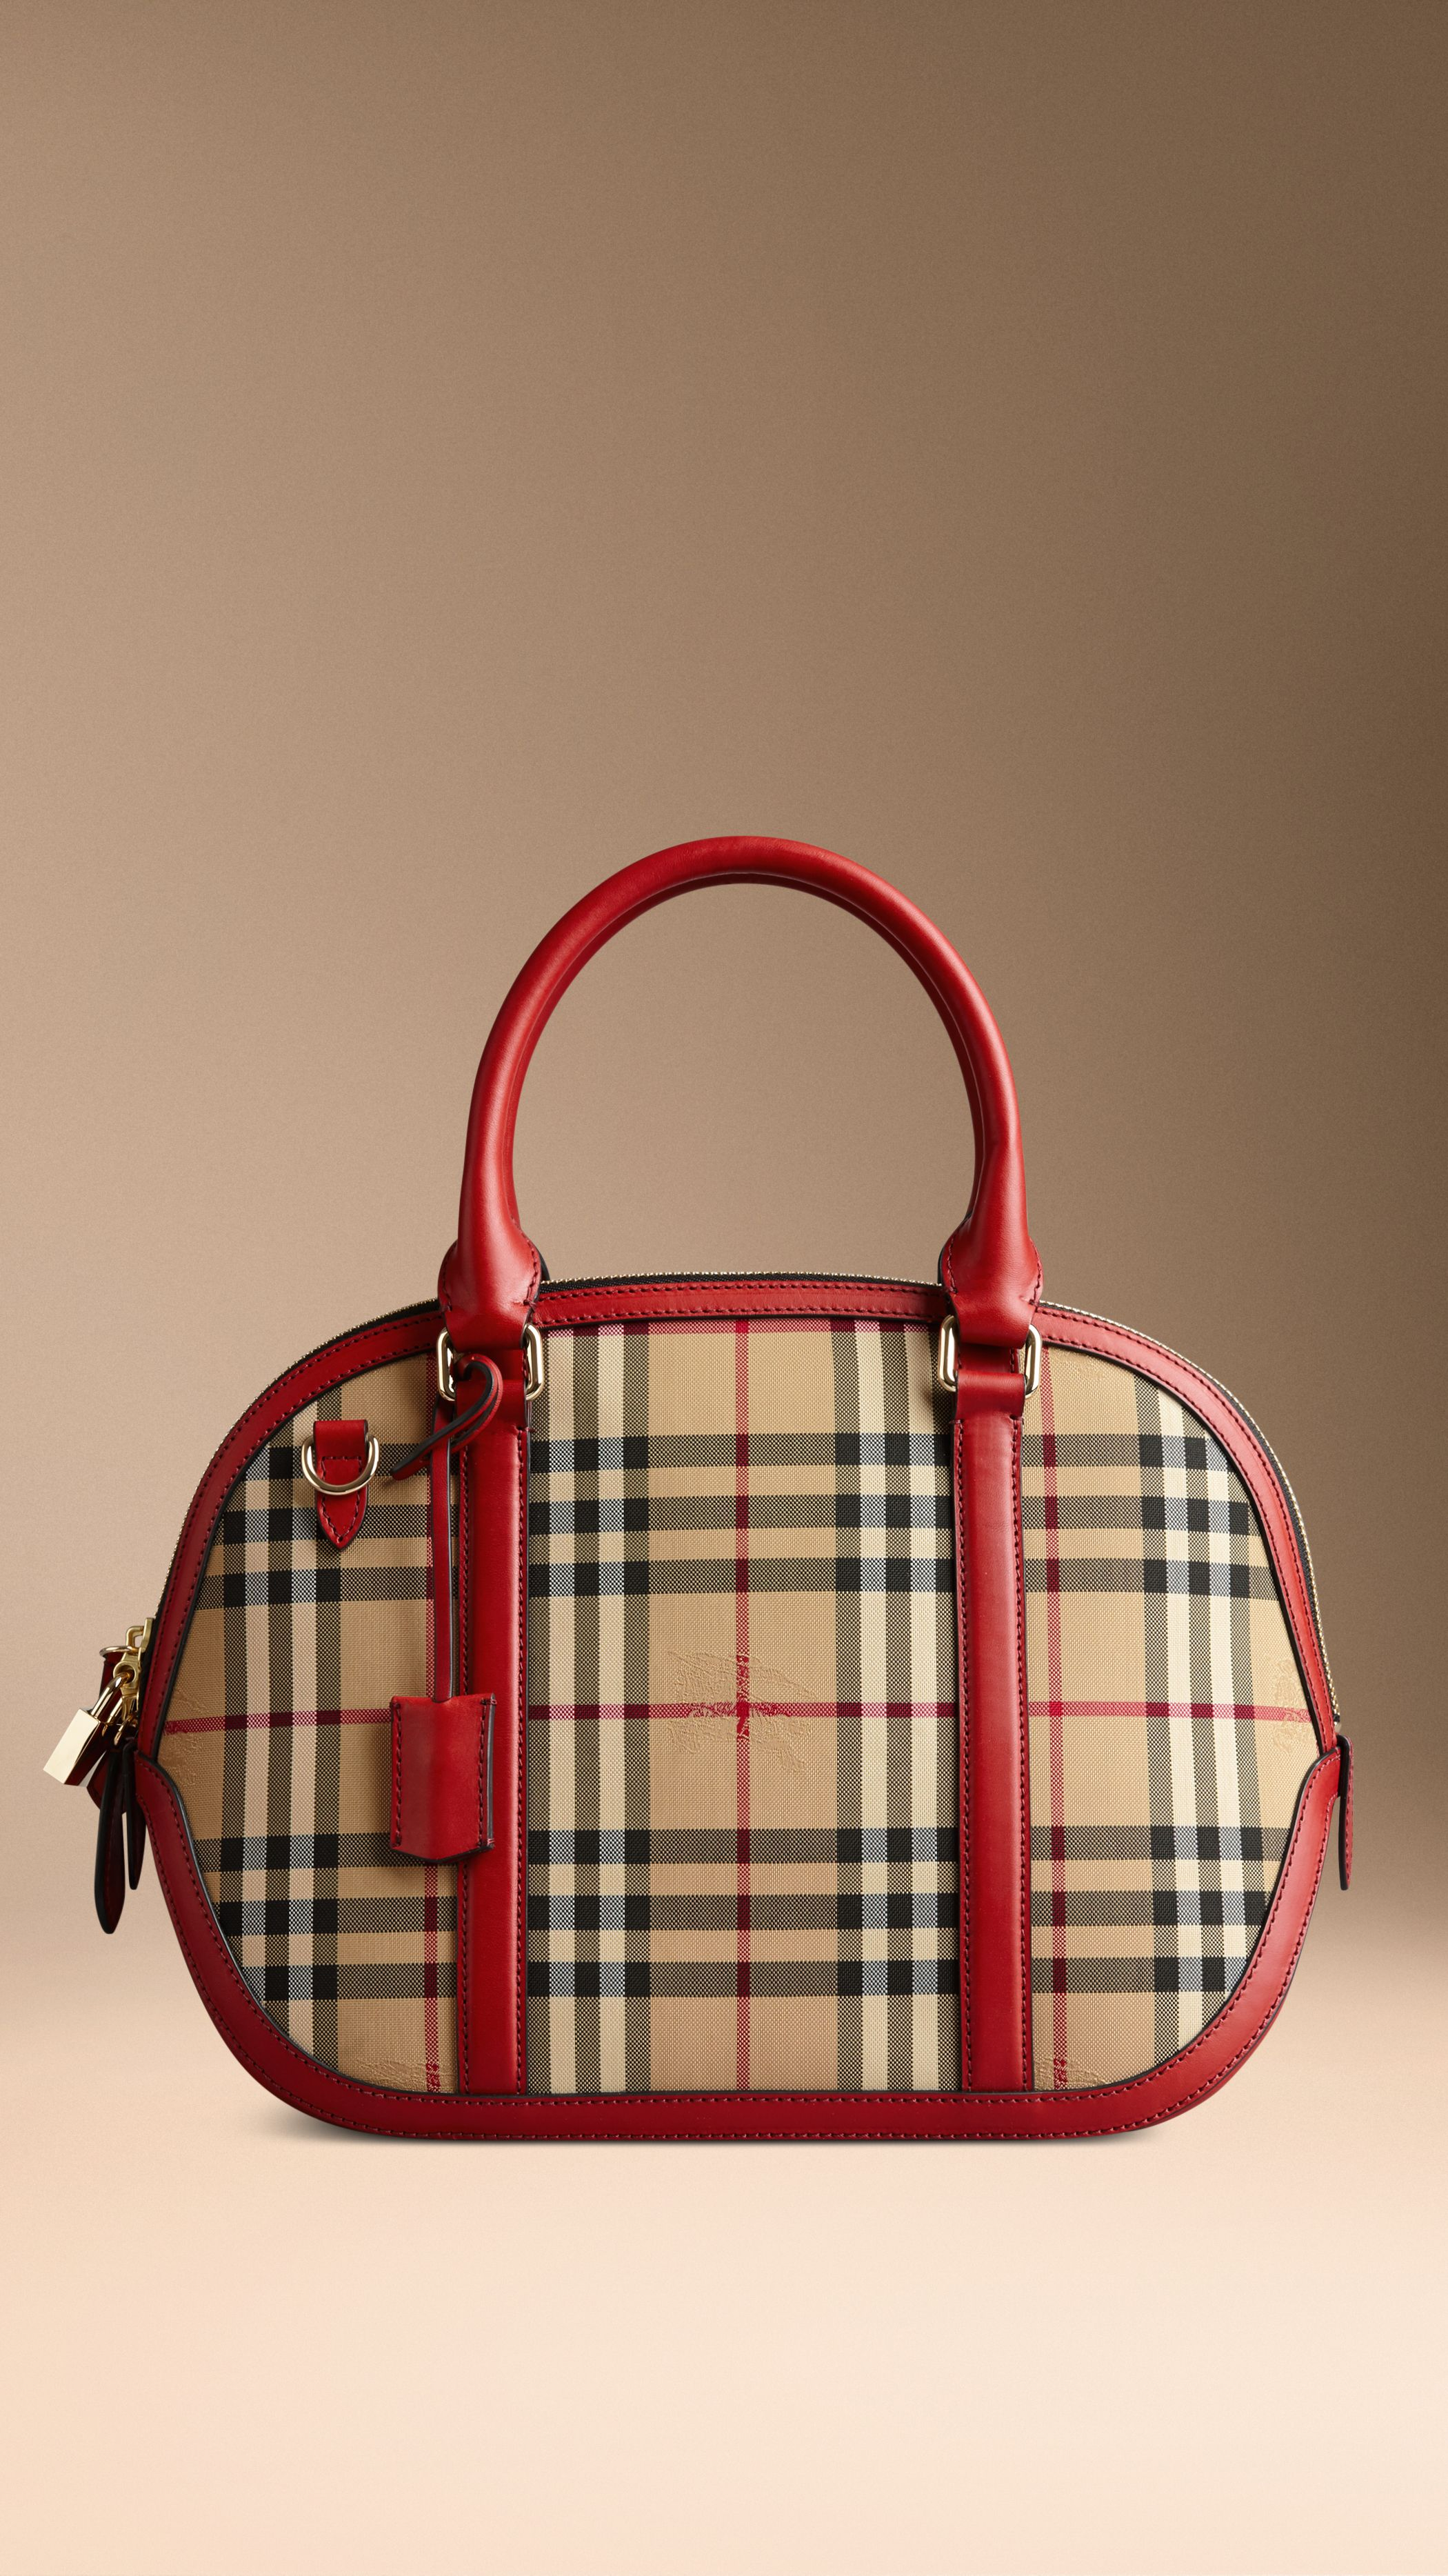 3b6ce39c8f85 A structured bag in the new Horseferry check with sartorial leather trim.  Find the perfect gift this festive season at Burberry.com  burberrygifts    ...